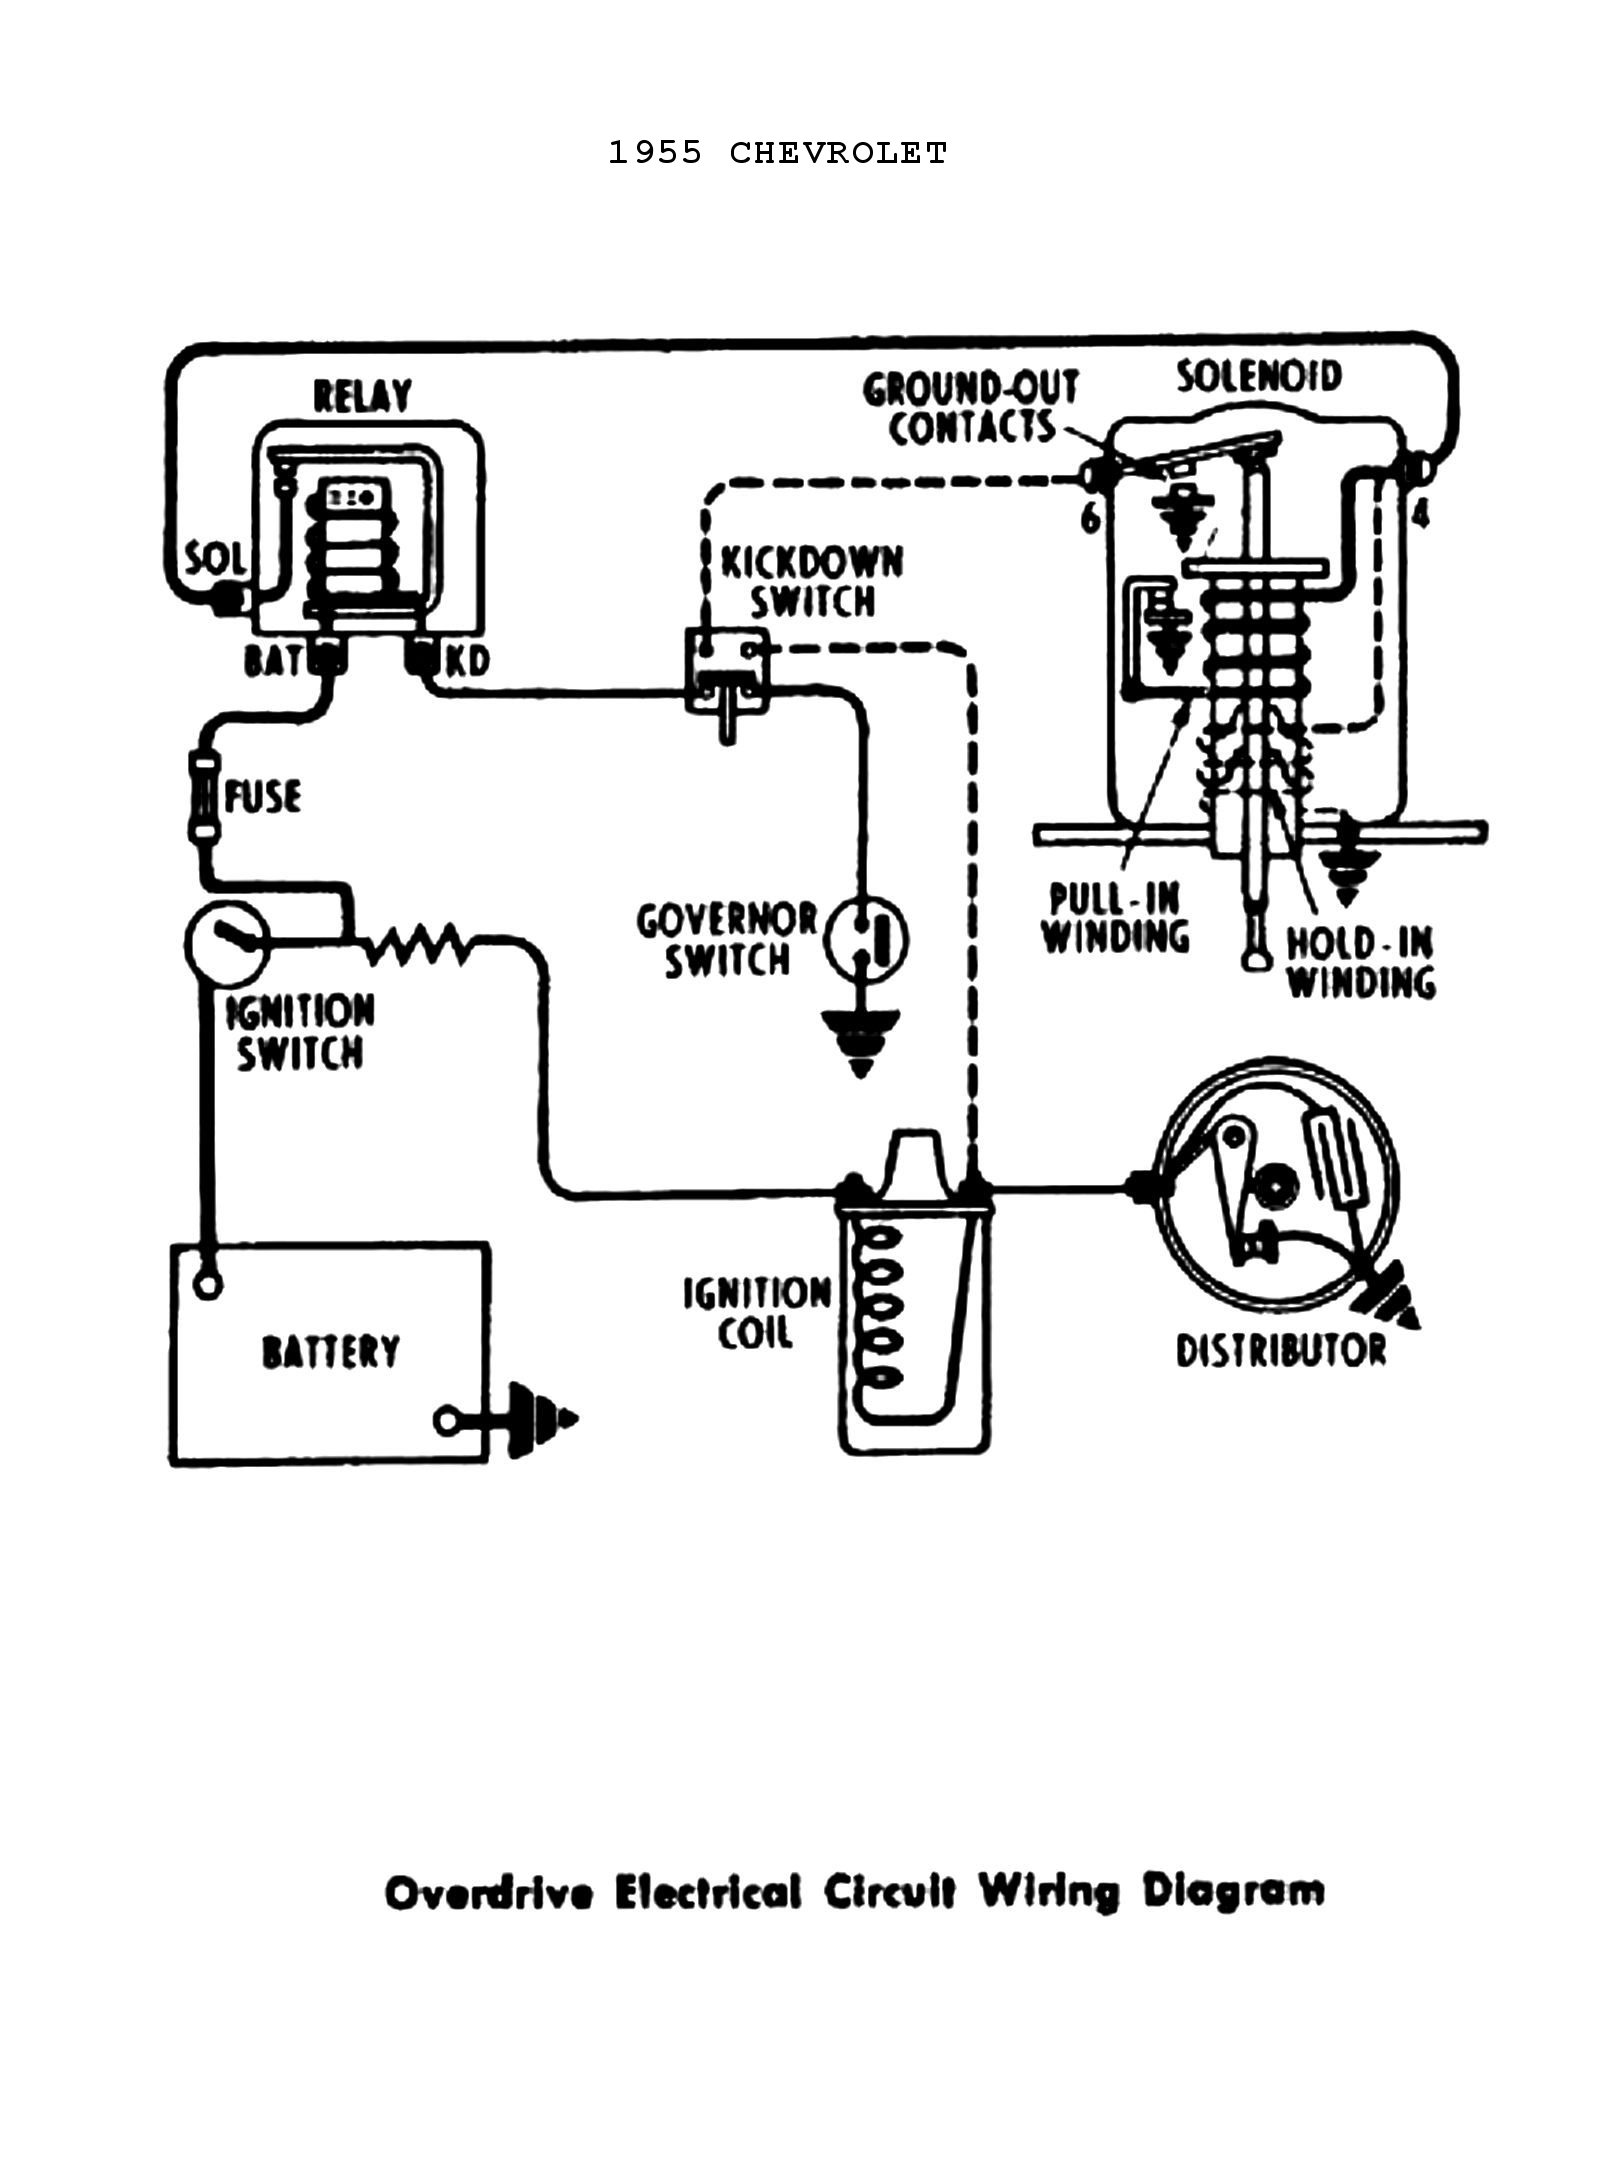 1946 Ford Distributor Wiring Wiring Diagram Schematics Ford Coil Wiring  Diagram Ford 302 Coil Wiring Diagram